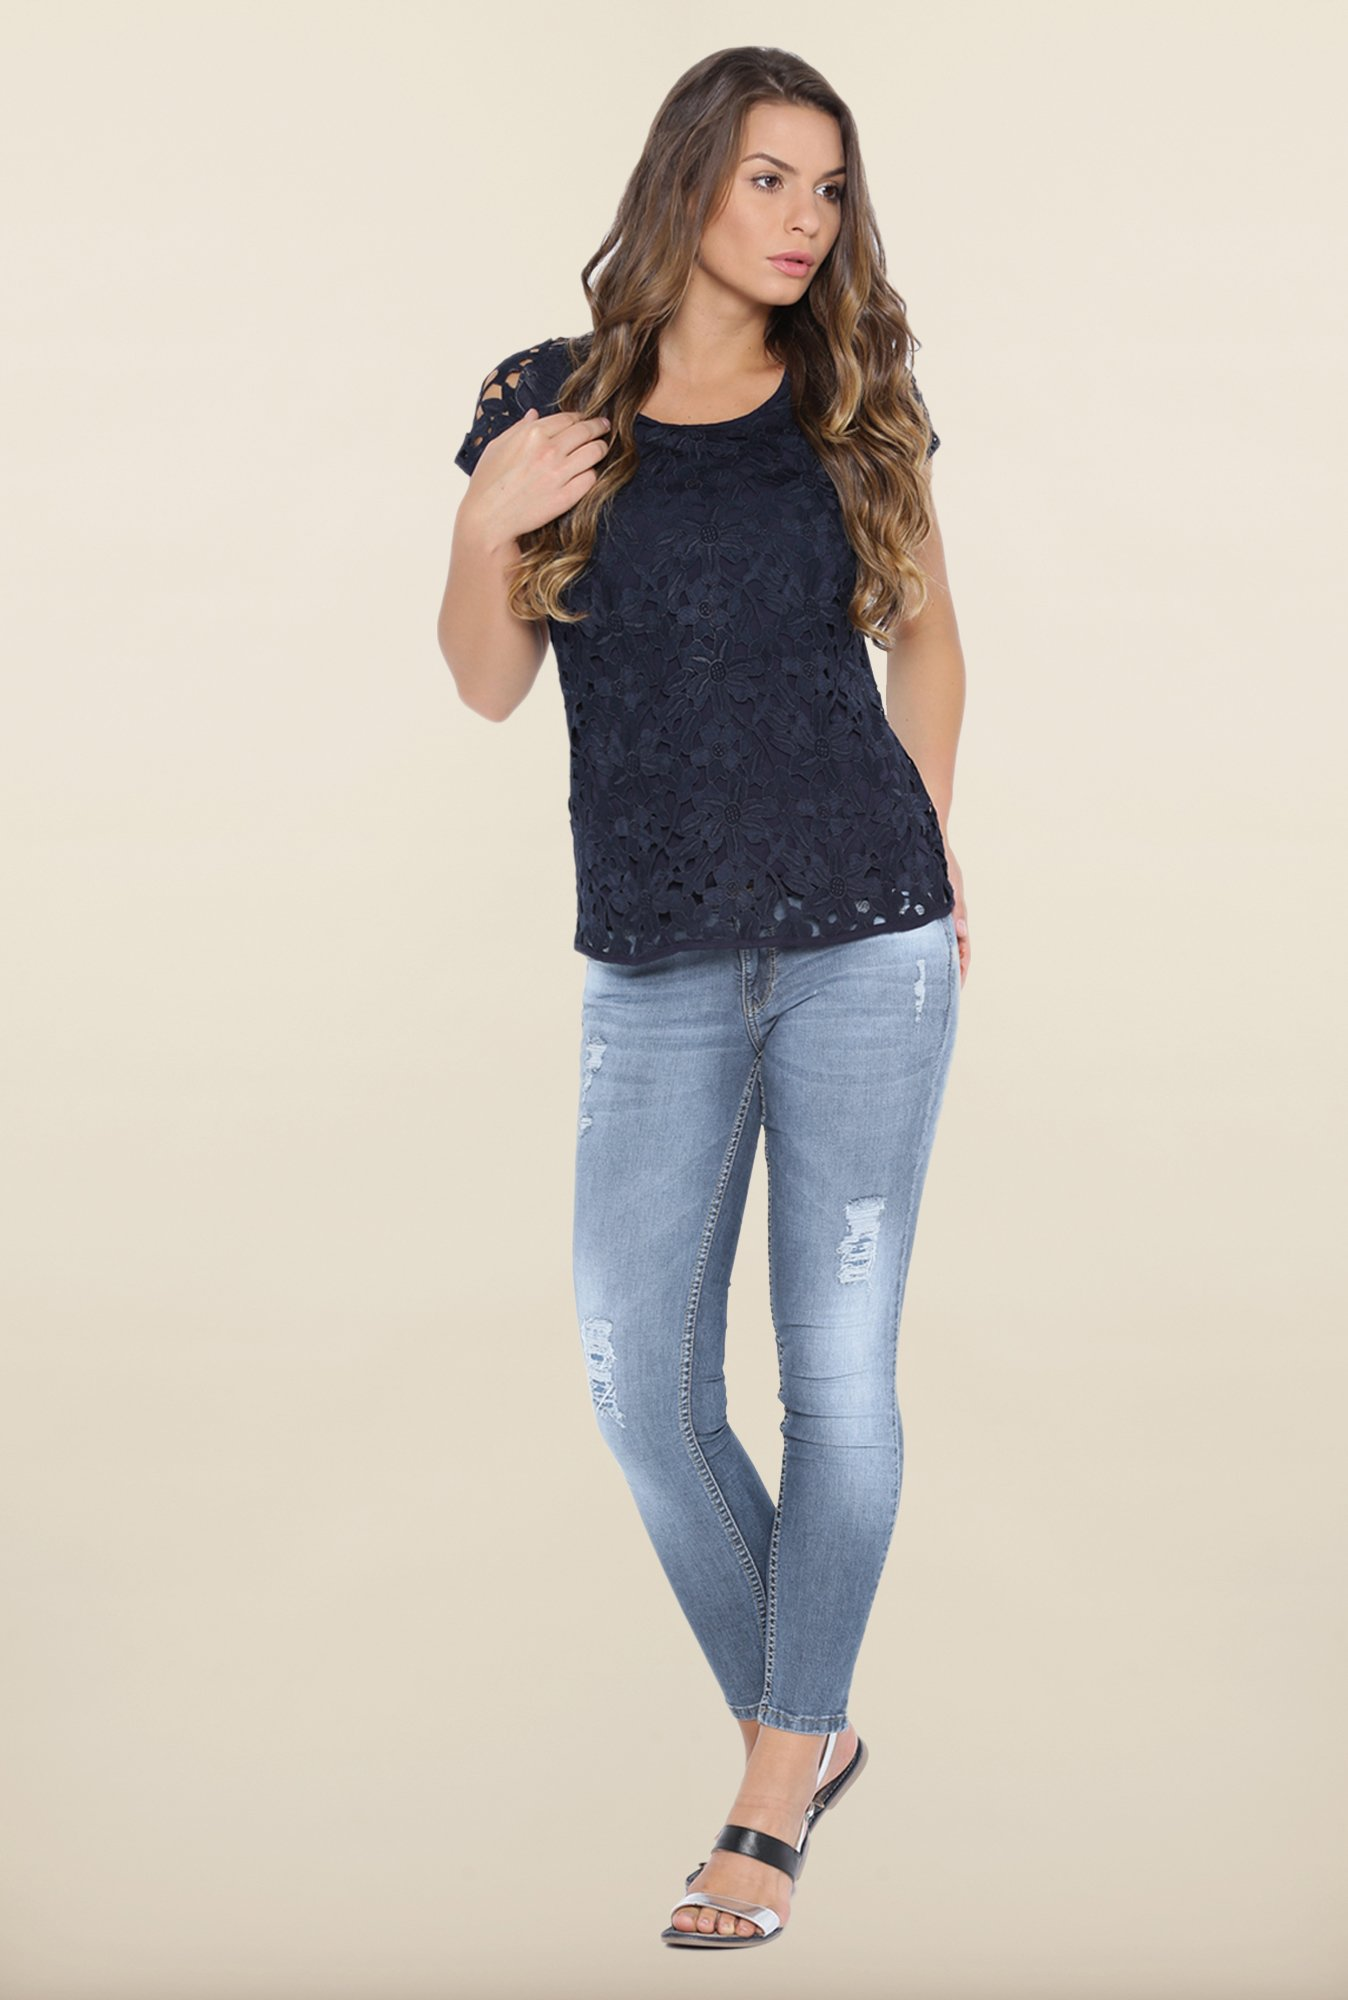 Kraus Blue Distressed Jeans